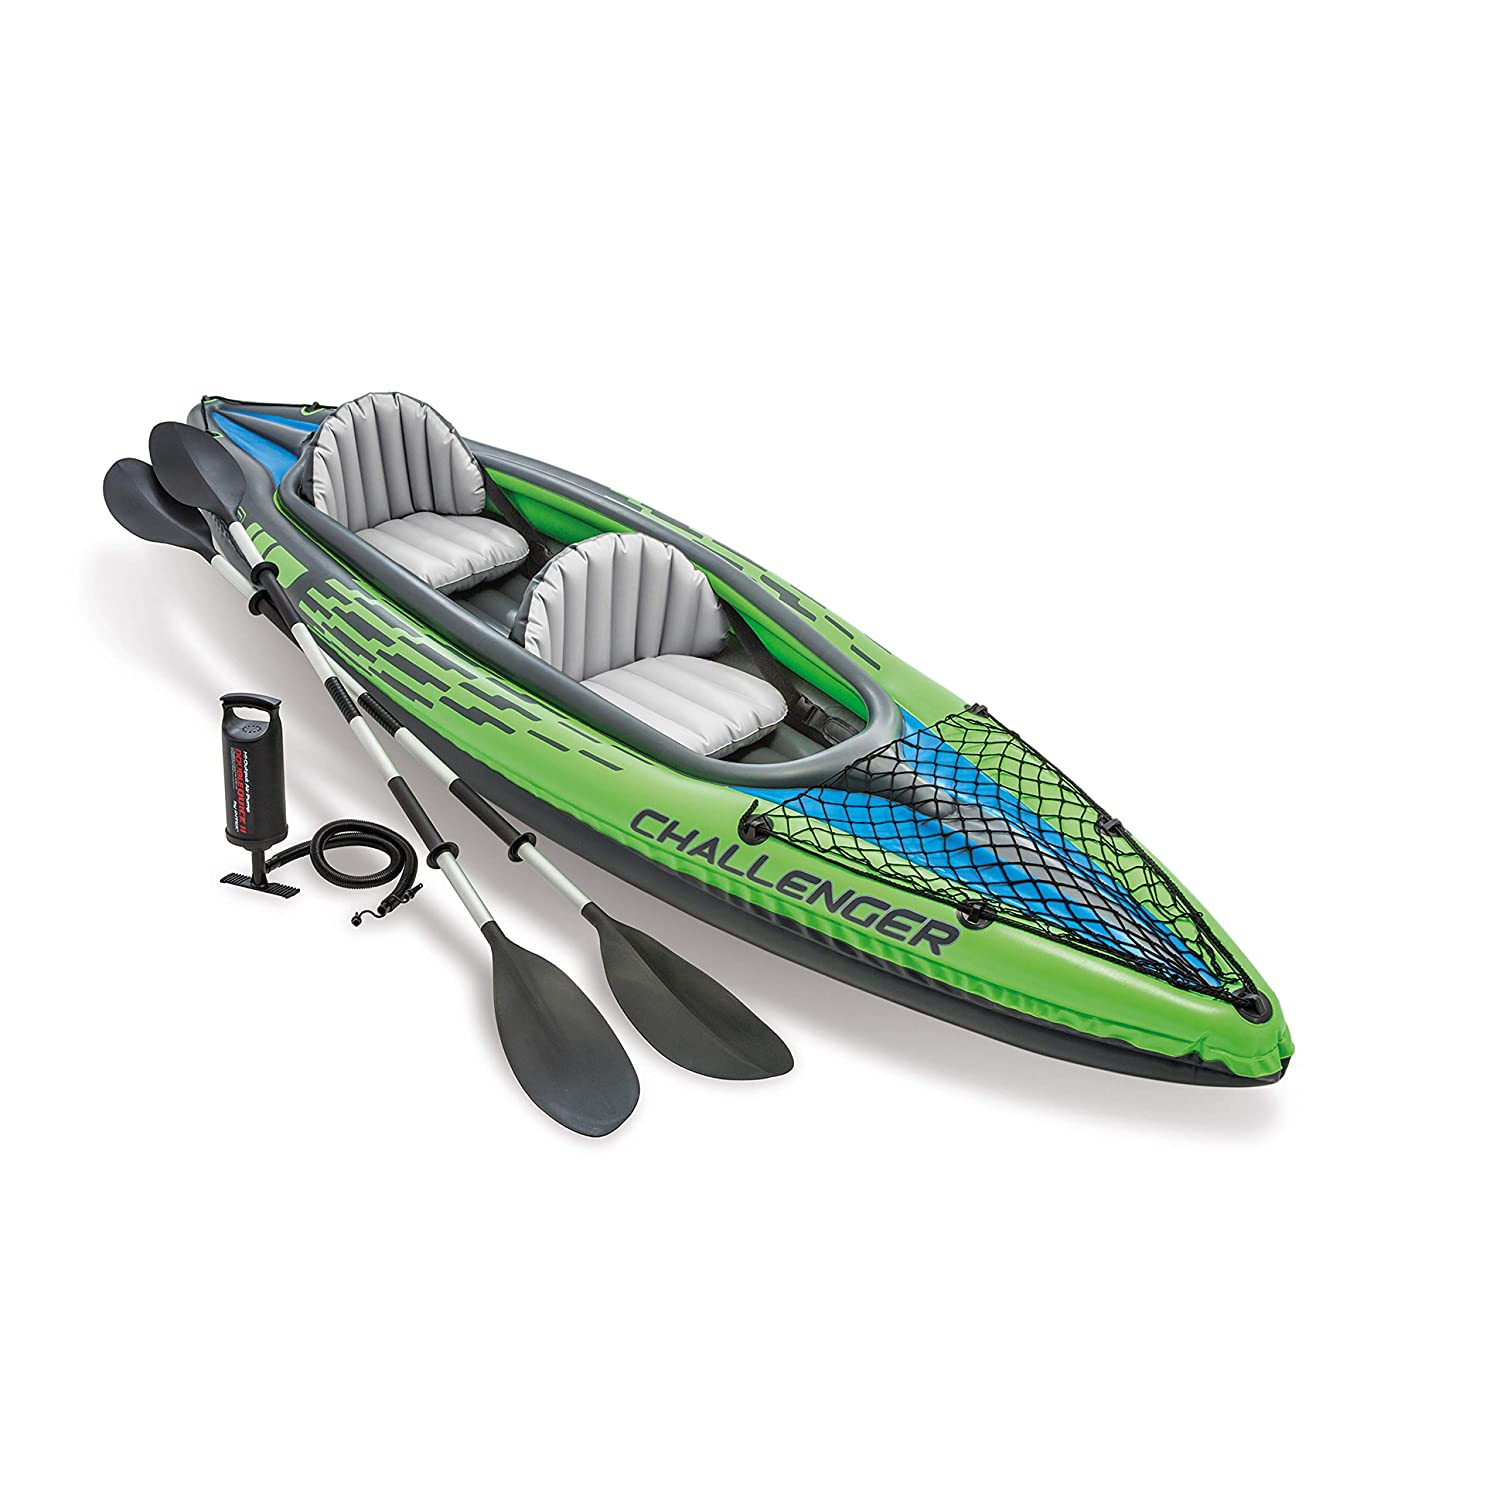 Intex Challenger K2 - Sit On Top Kayak